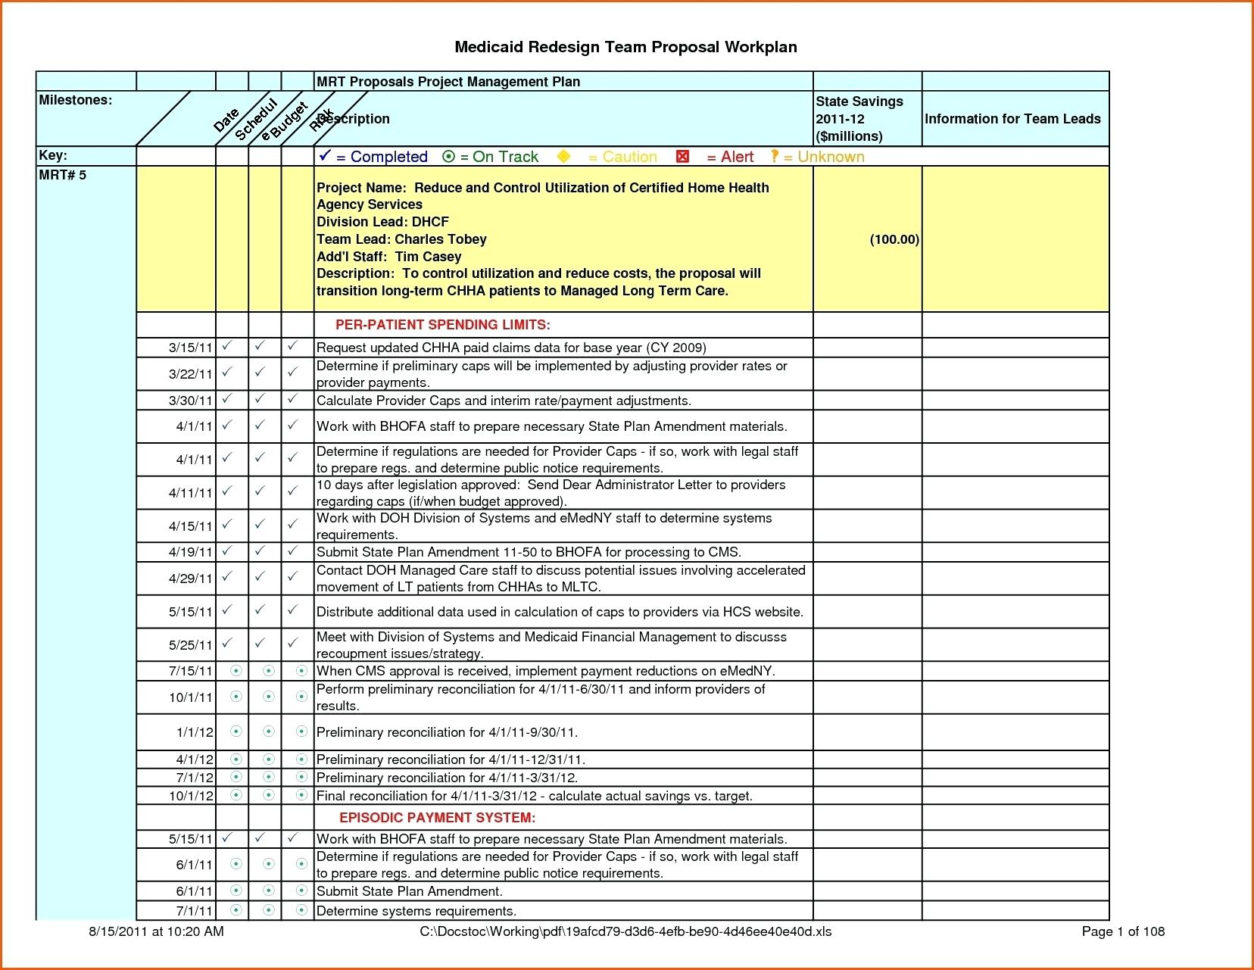 Event Management Spreadsheet Throughout Event Project Management Plan Example – Celestialmedia.co